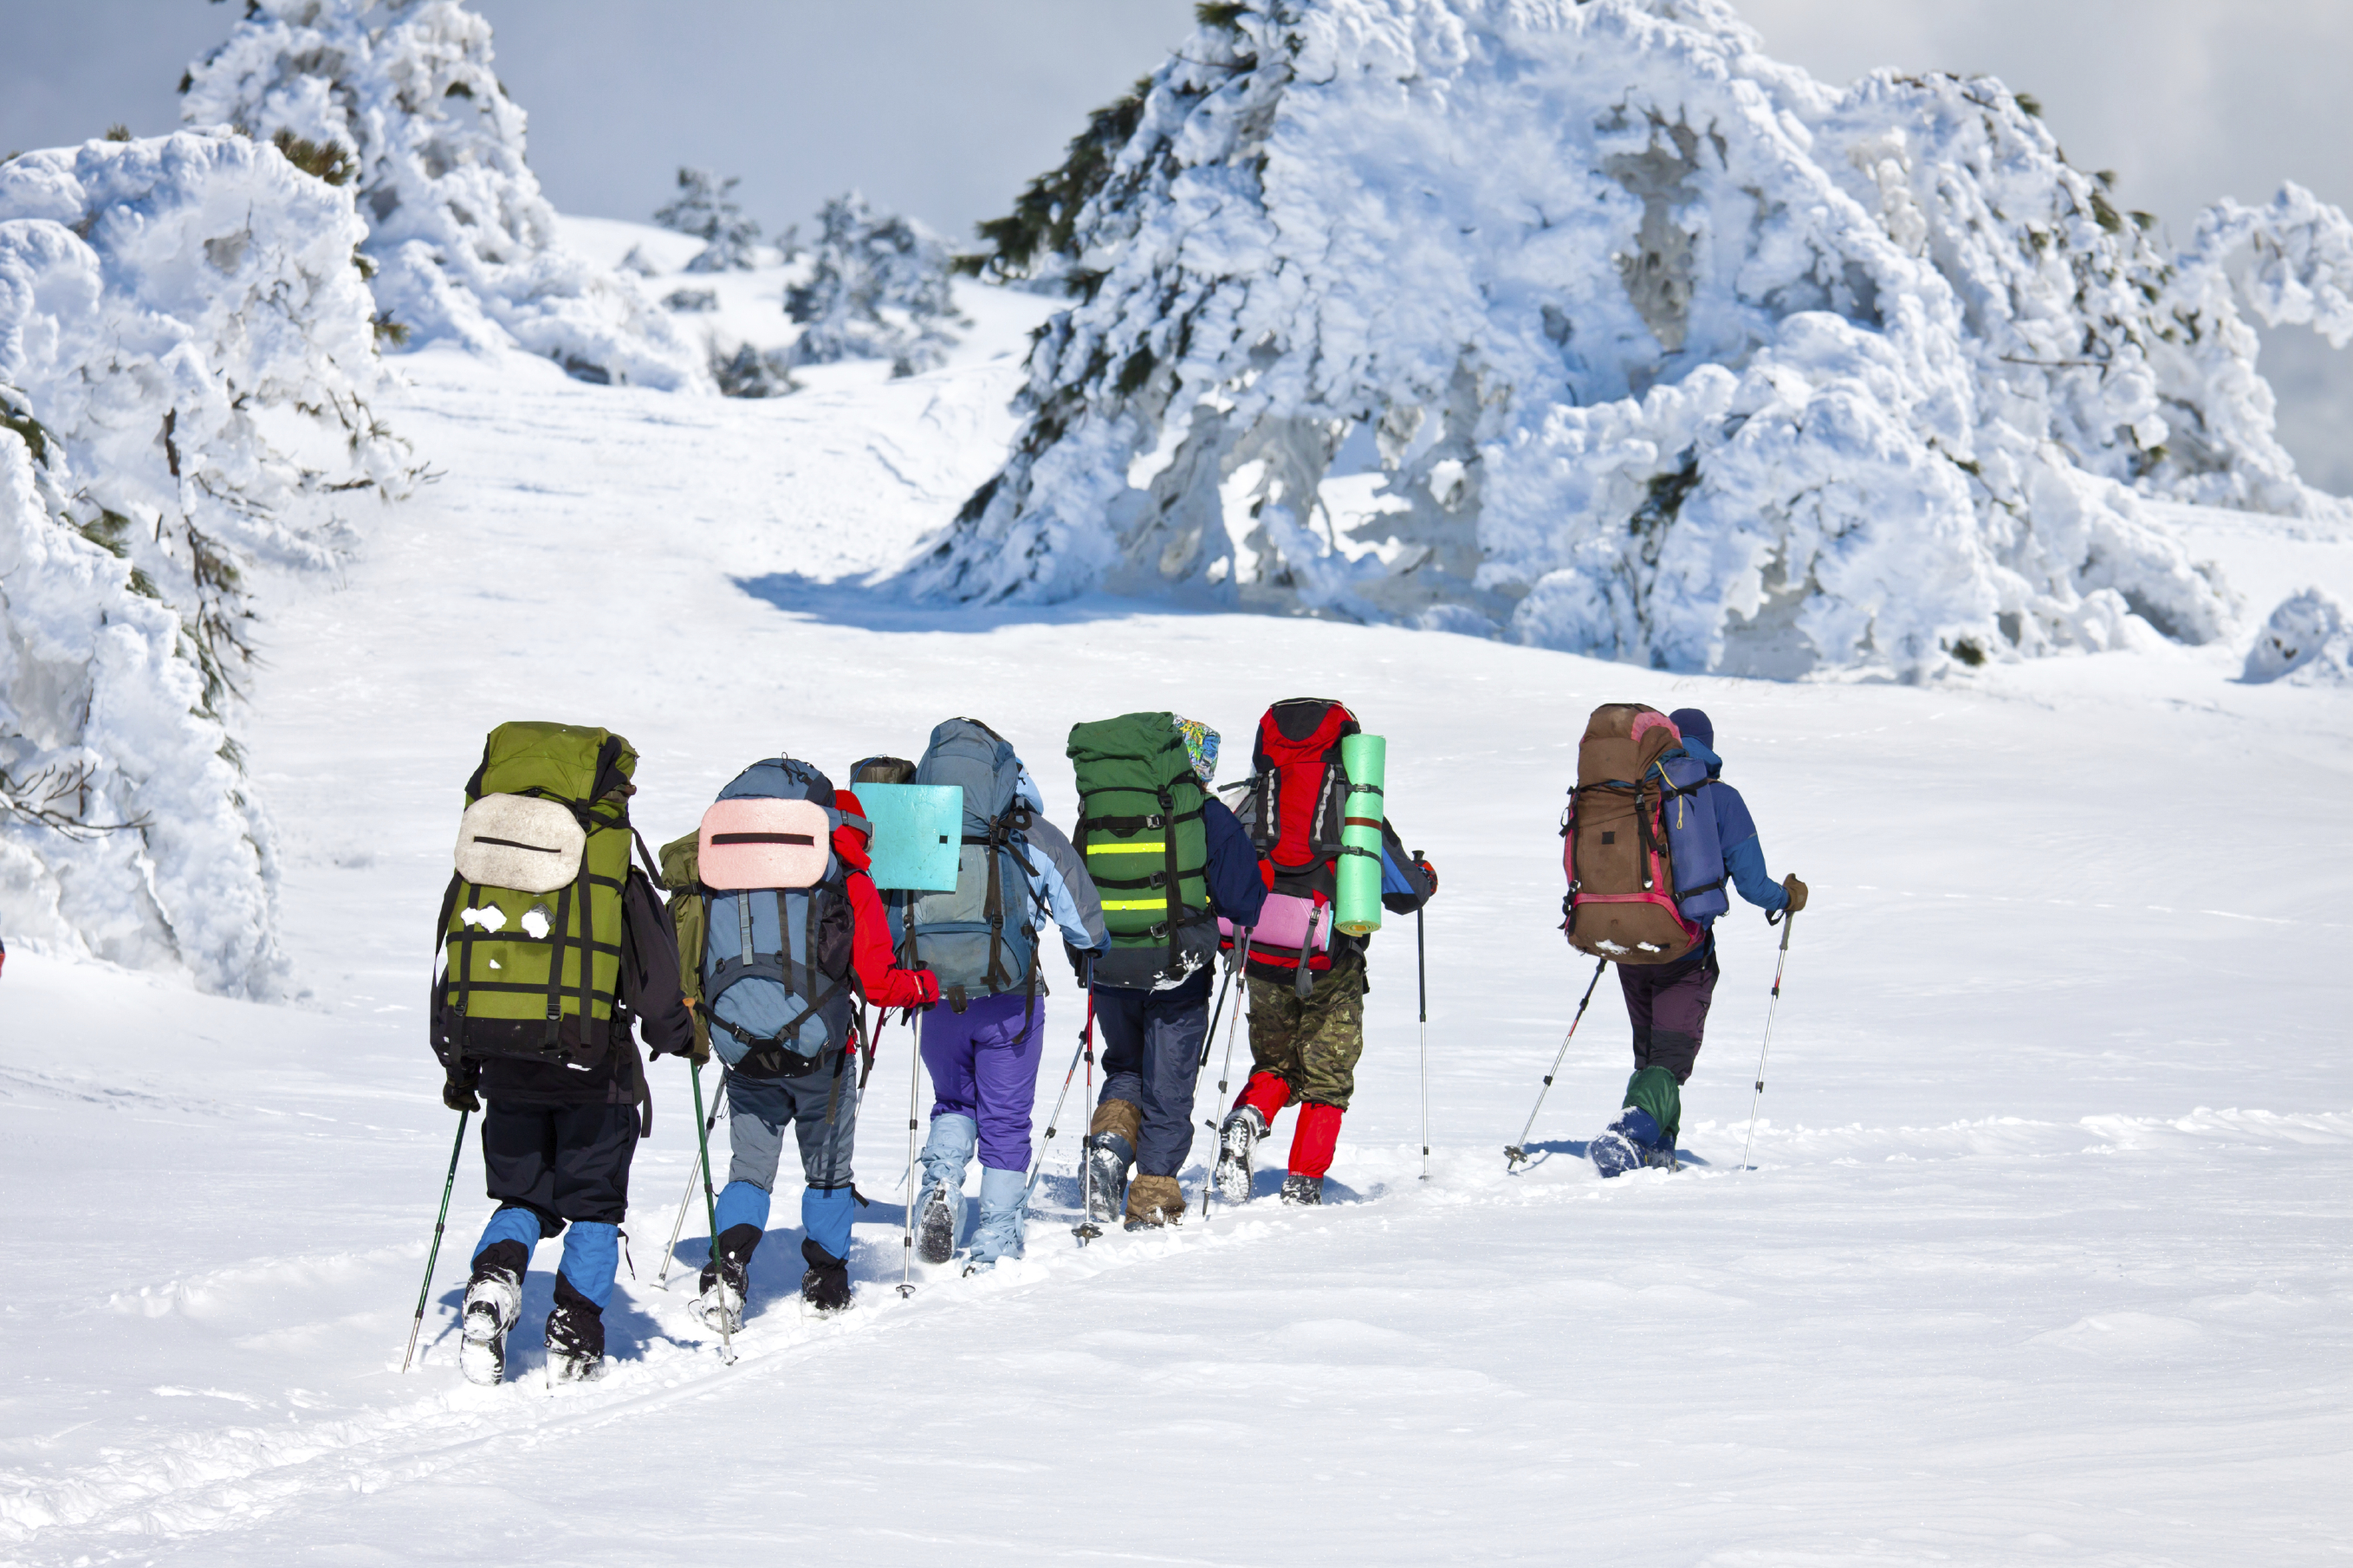 Leading a group up the mountain